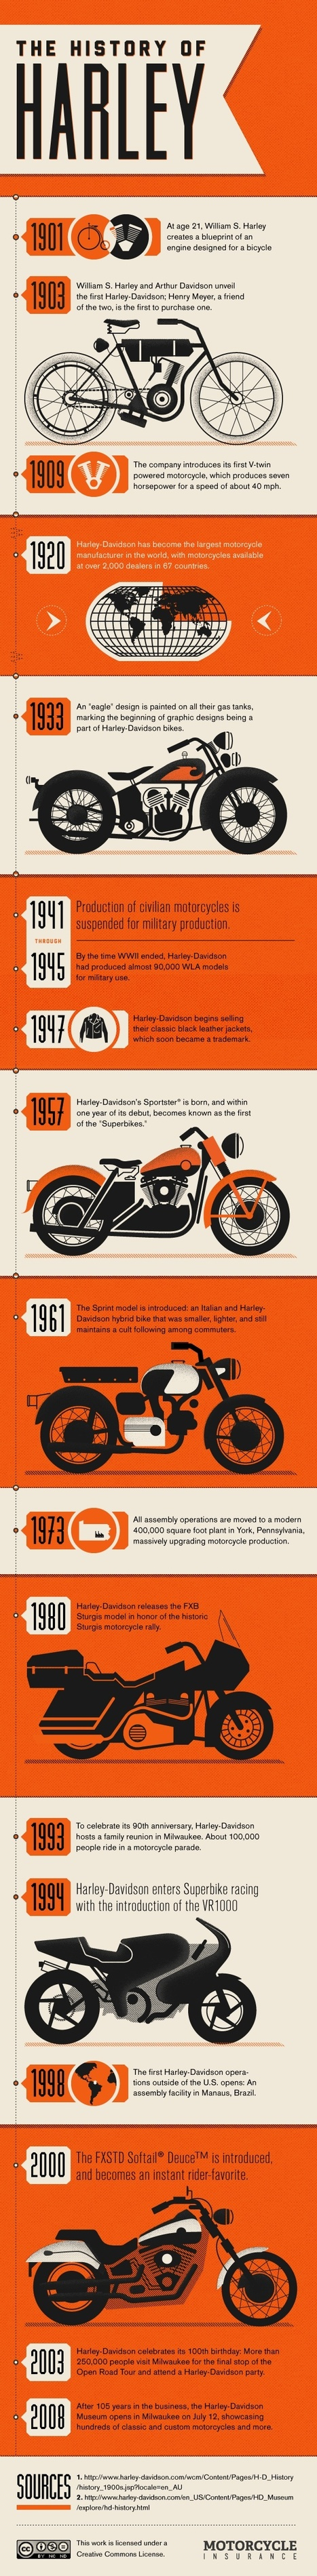 Harley-Davidson | Les infographies ! | Scoop.it